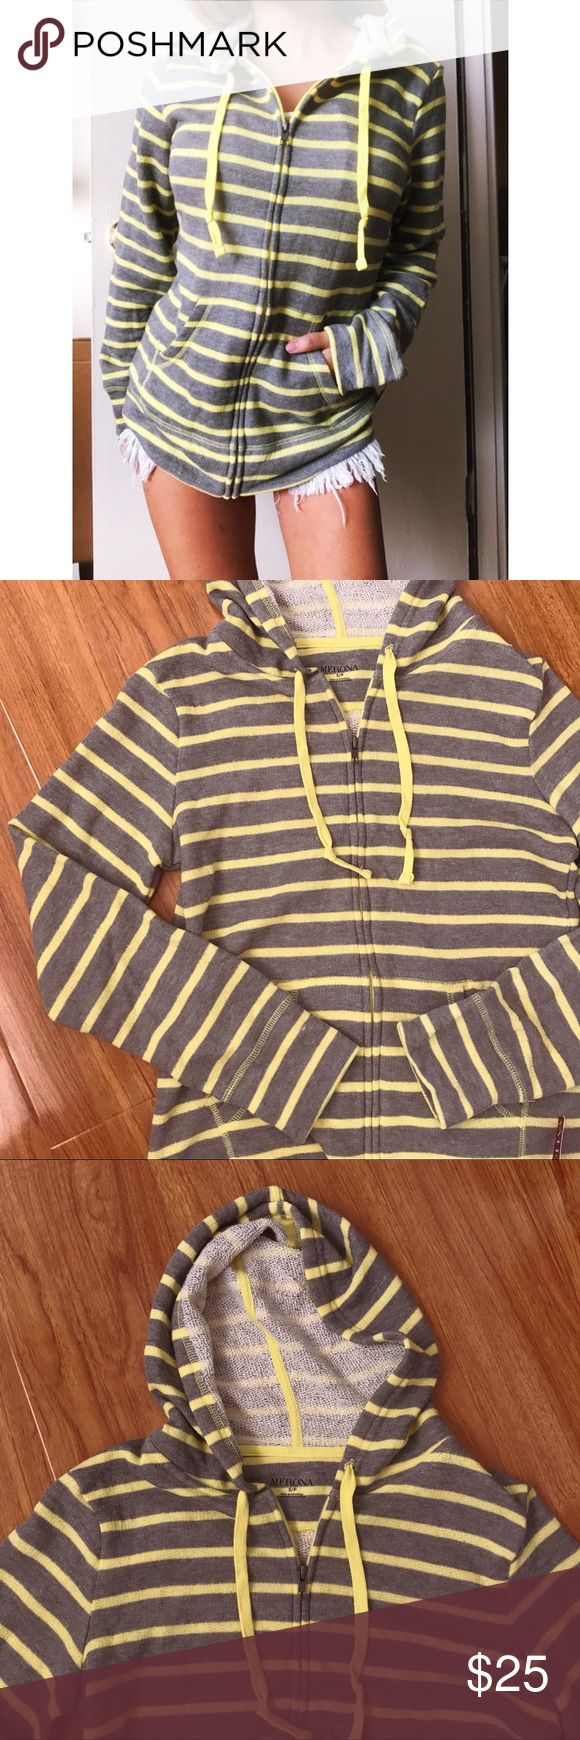 NWT Grey/Neon Striped Zip Up Hoodie This hoodie is NWT!! Excellent condition. Features a zip up light weight jacket with yellow self tying strings. Hoodie attached. Two front pockets. Super cute! Pair with jeans and boots! Fits like a true small. Offers welcome!! 😘 Jackets & Coats